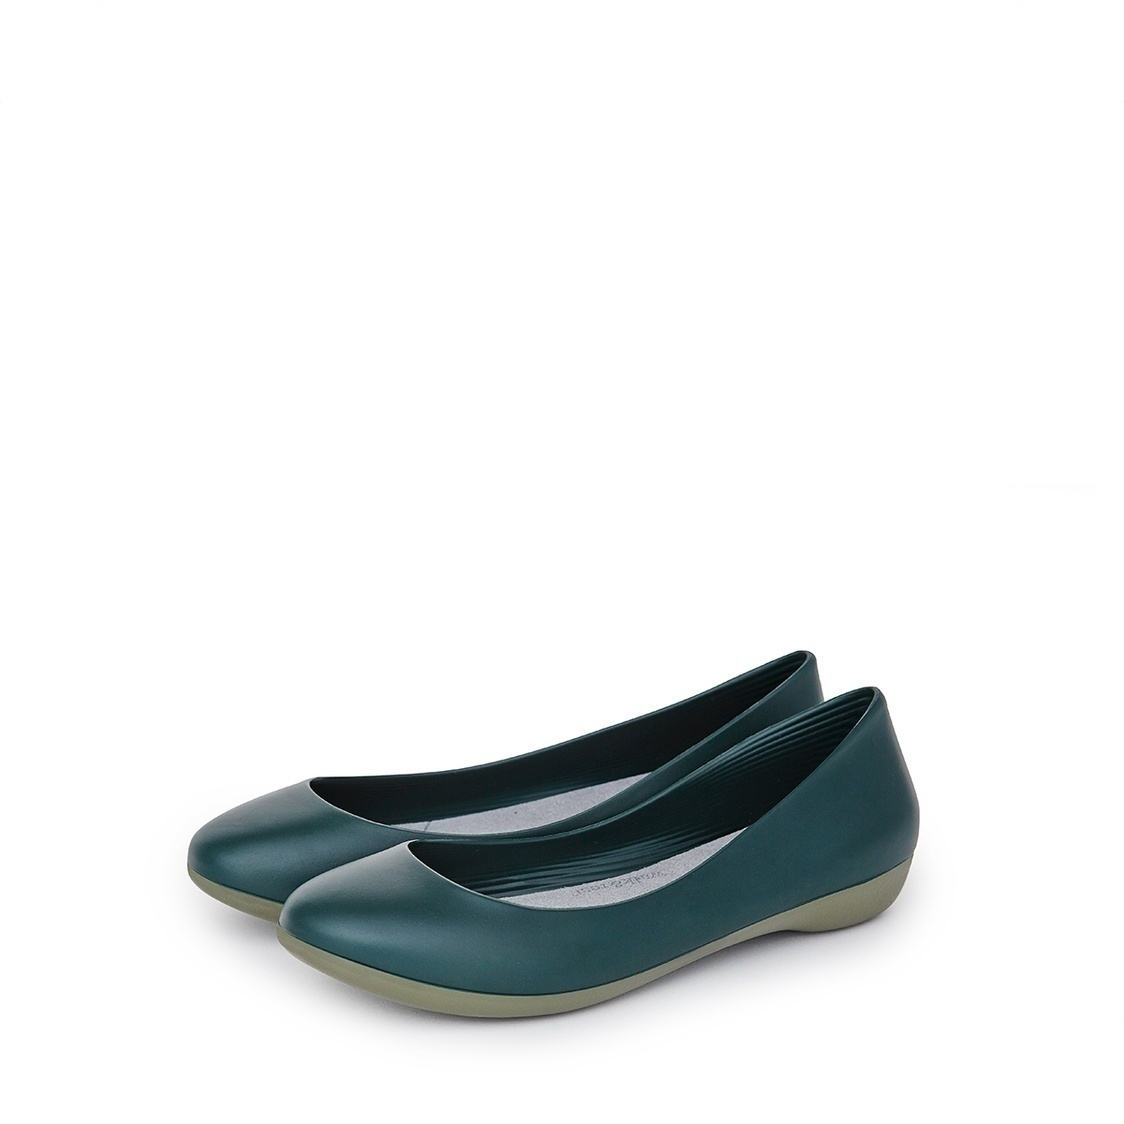 F2 Flat-Pointed Heel height 2cm Pine Green